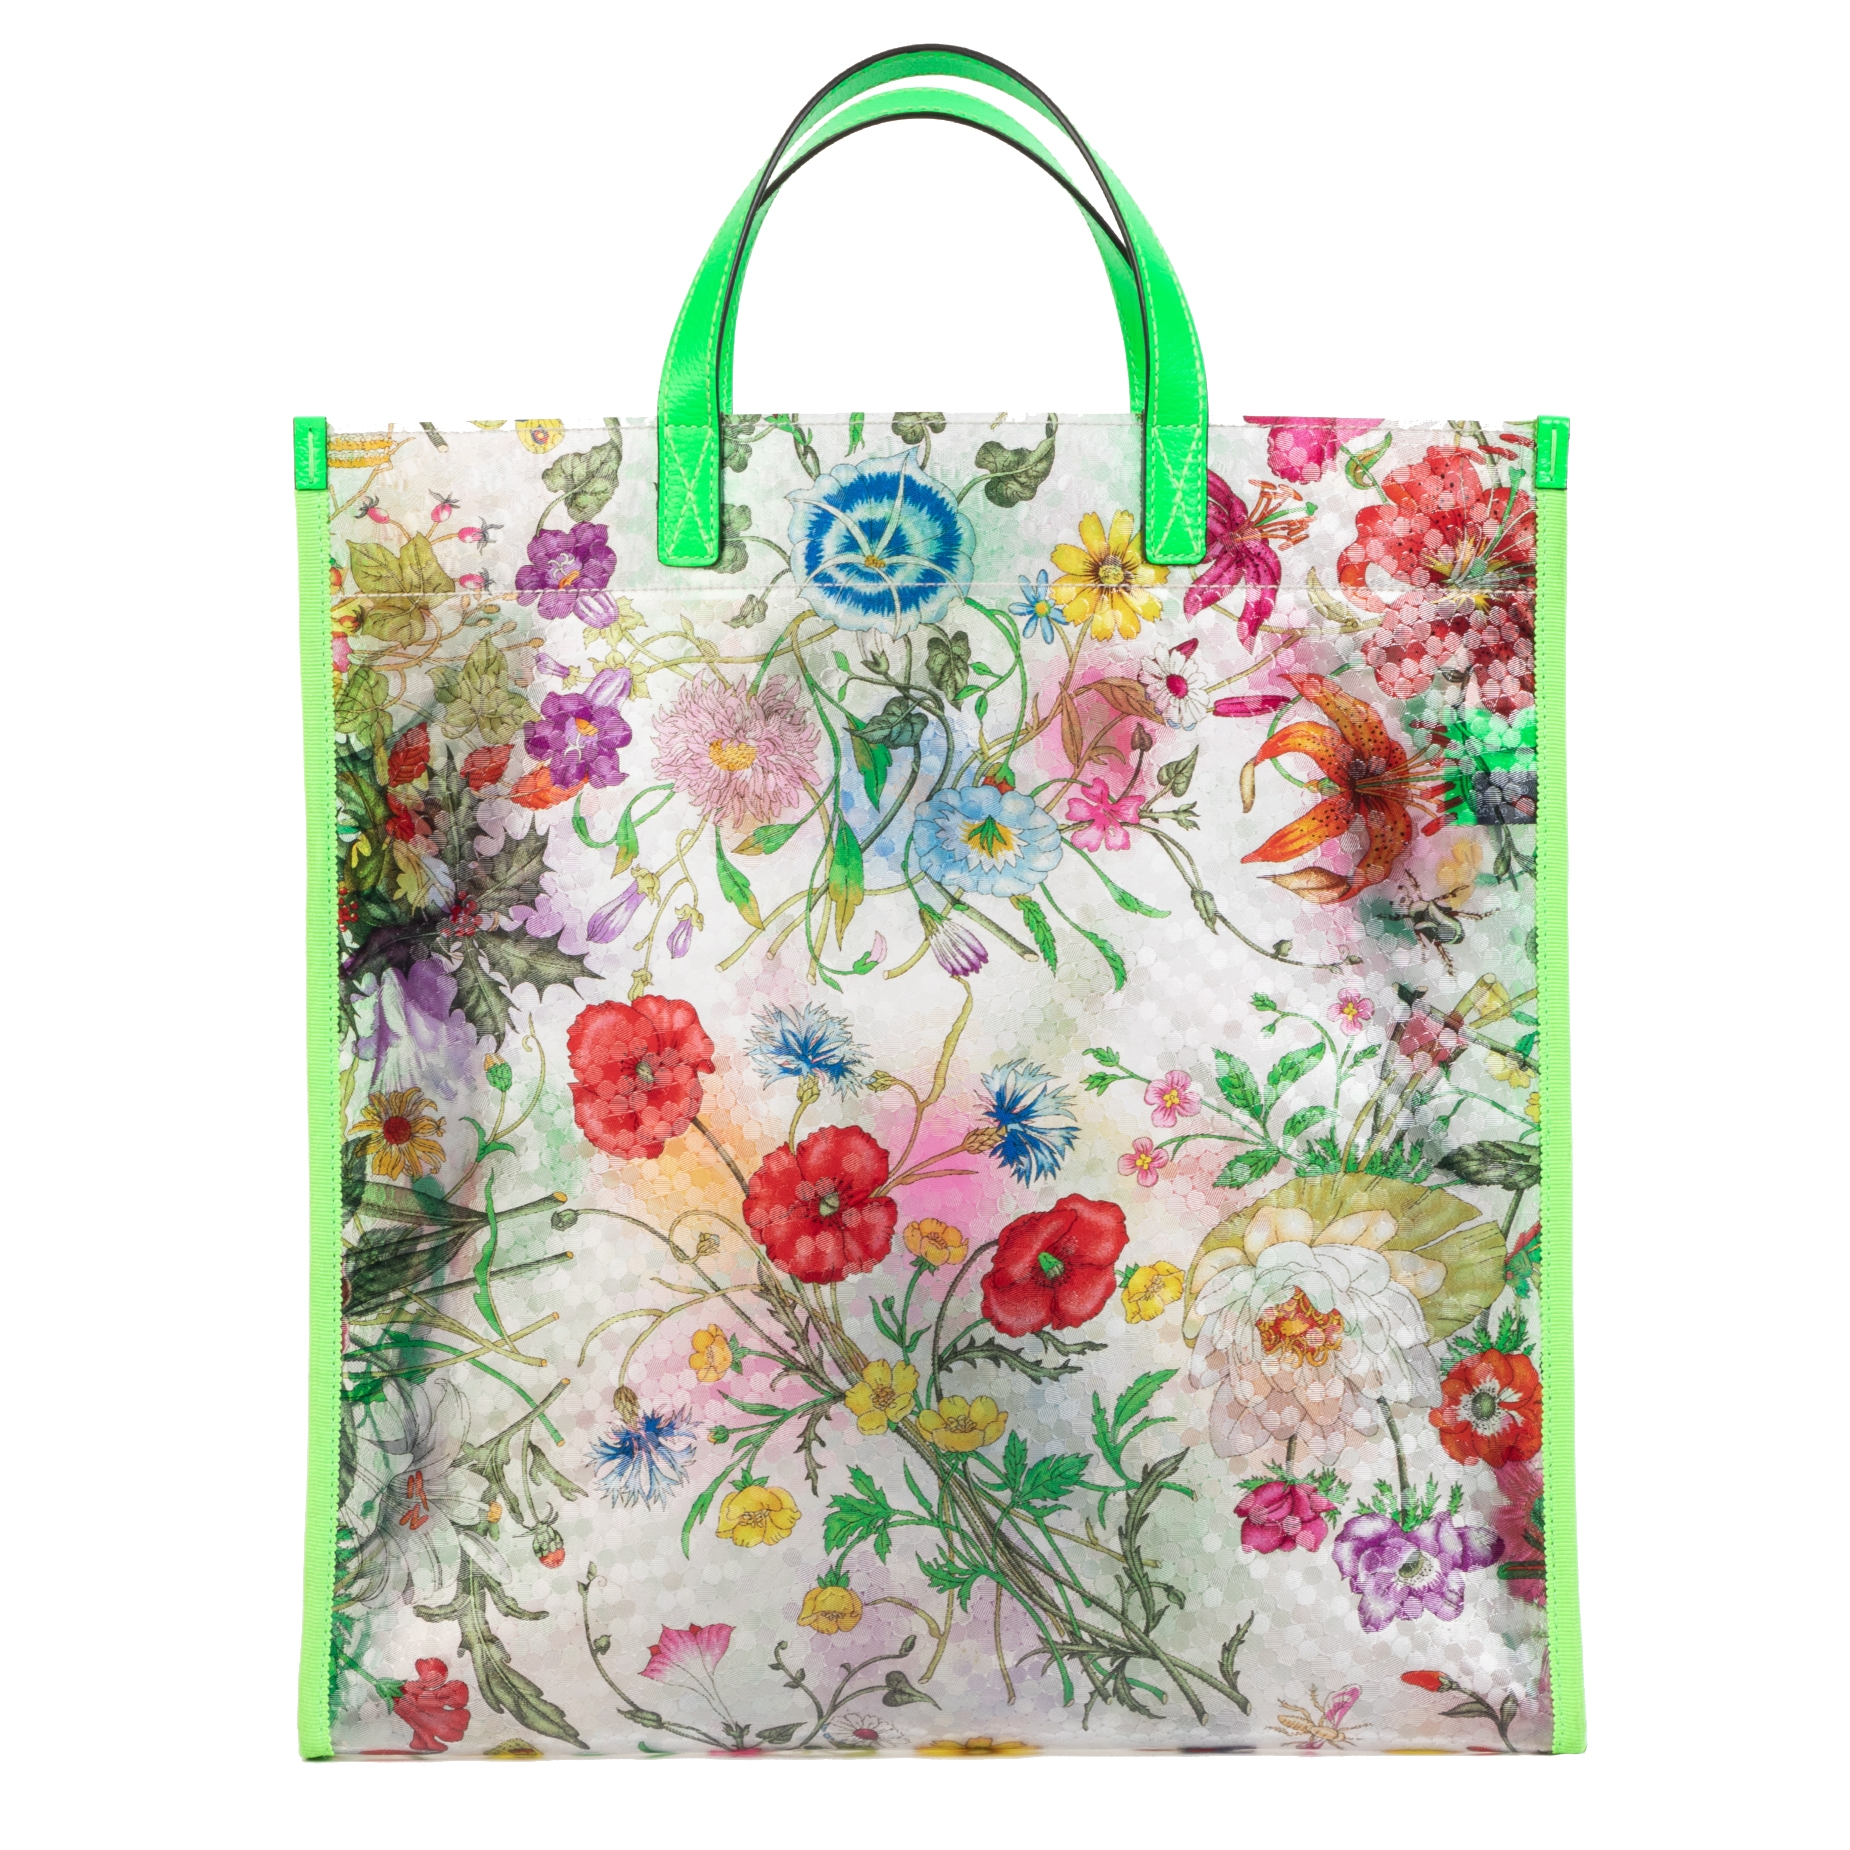 We buy and sell your authentic designer Gucci Floral Print Neon Green Vinyl Tote Bag for the best price at Labellov